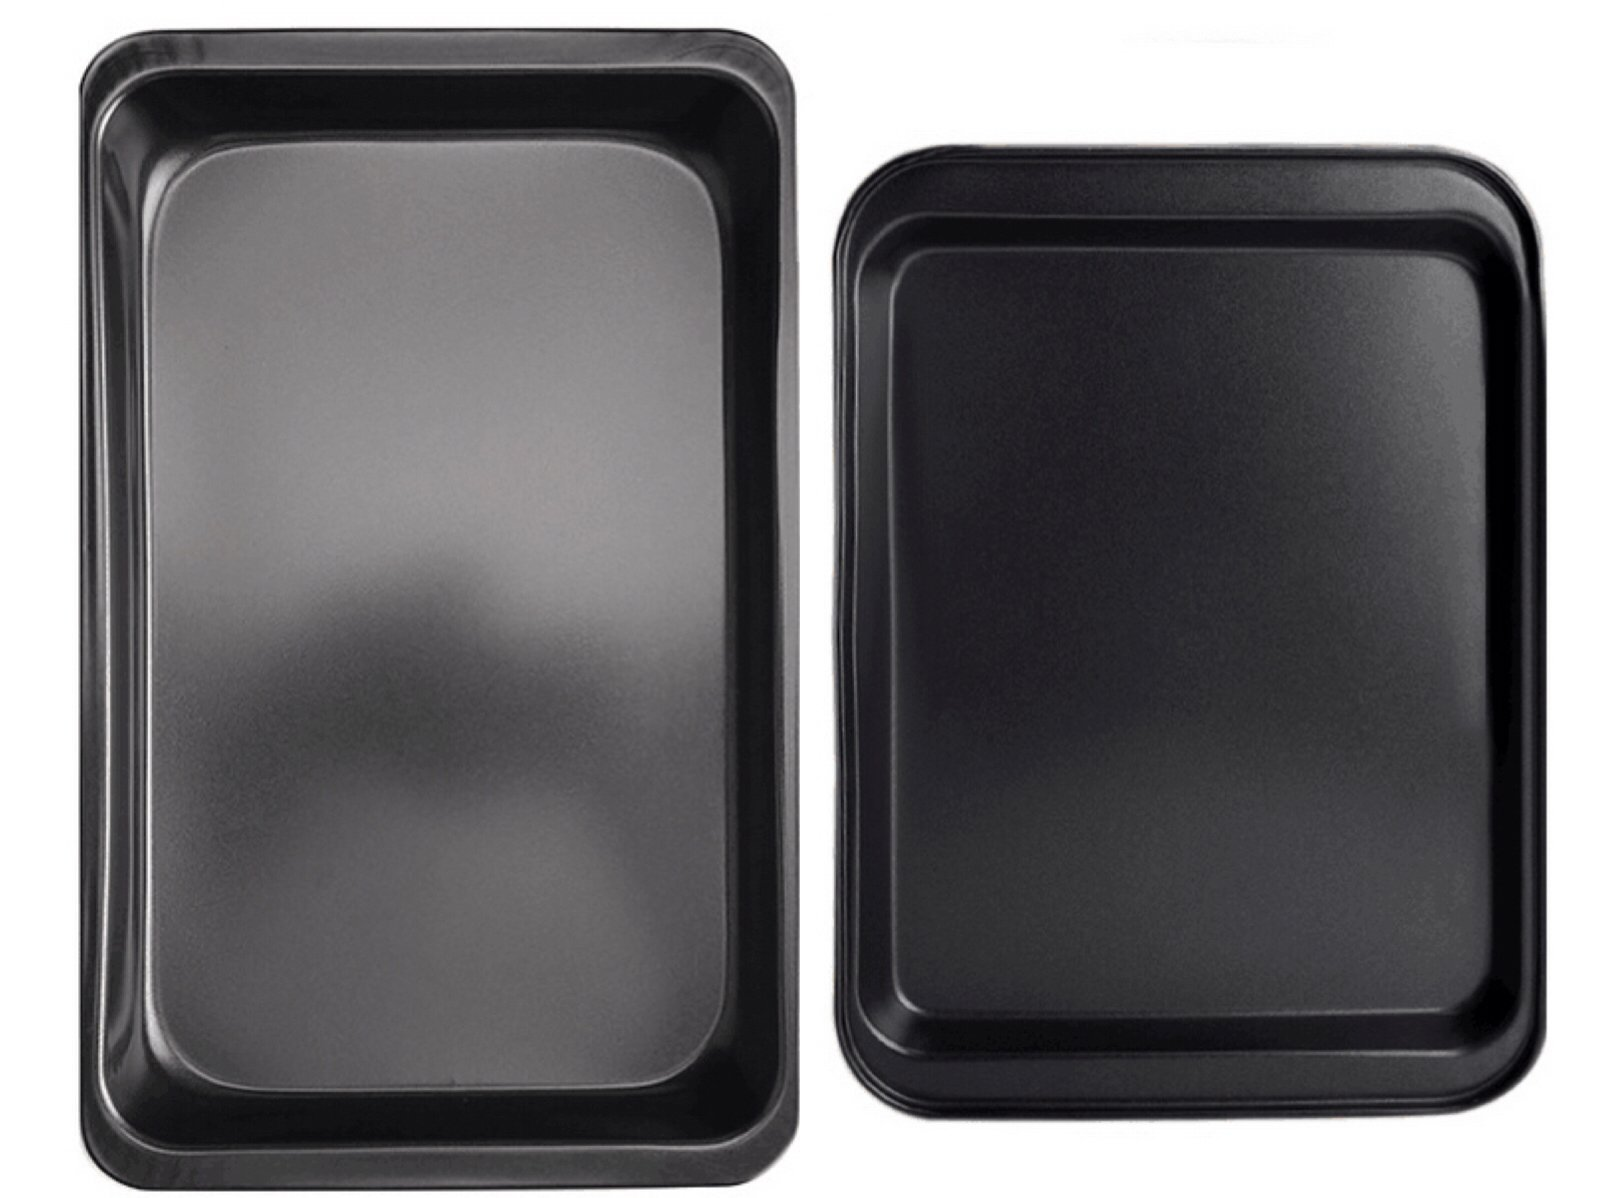 Oven Lovin' Bakeware 2-Piece Nonstick Pan Set Non Stick Coating, Durable Carbon Steel, Pizza Tray, Cake Pans, Cookie Sheet, Muffins by StarFashion